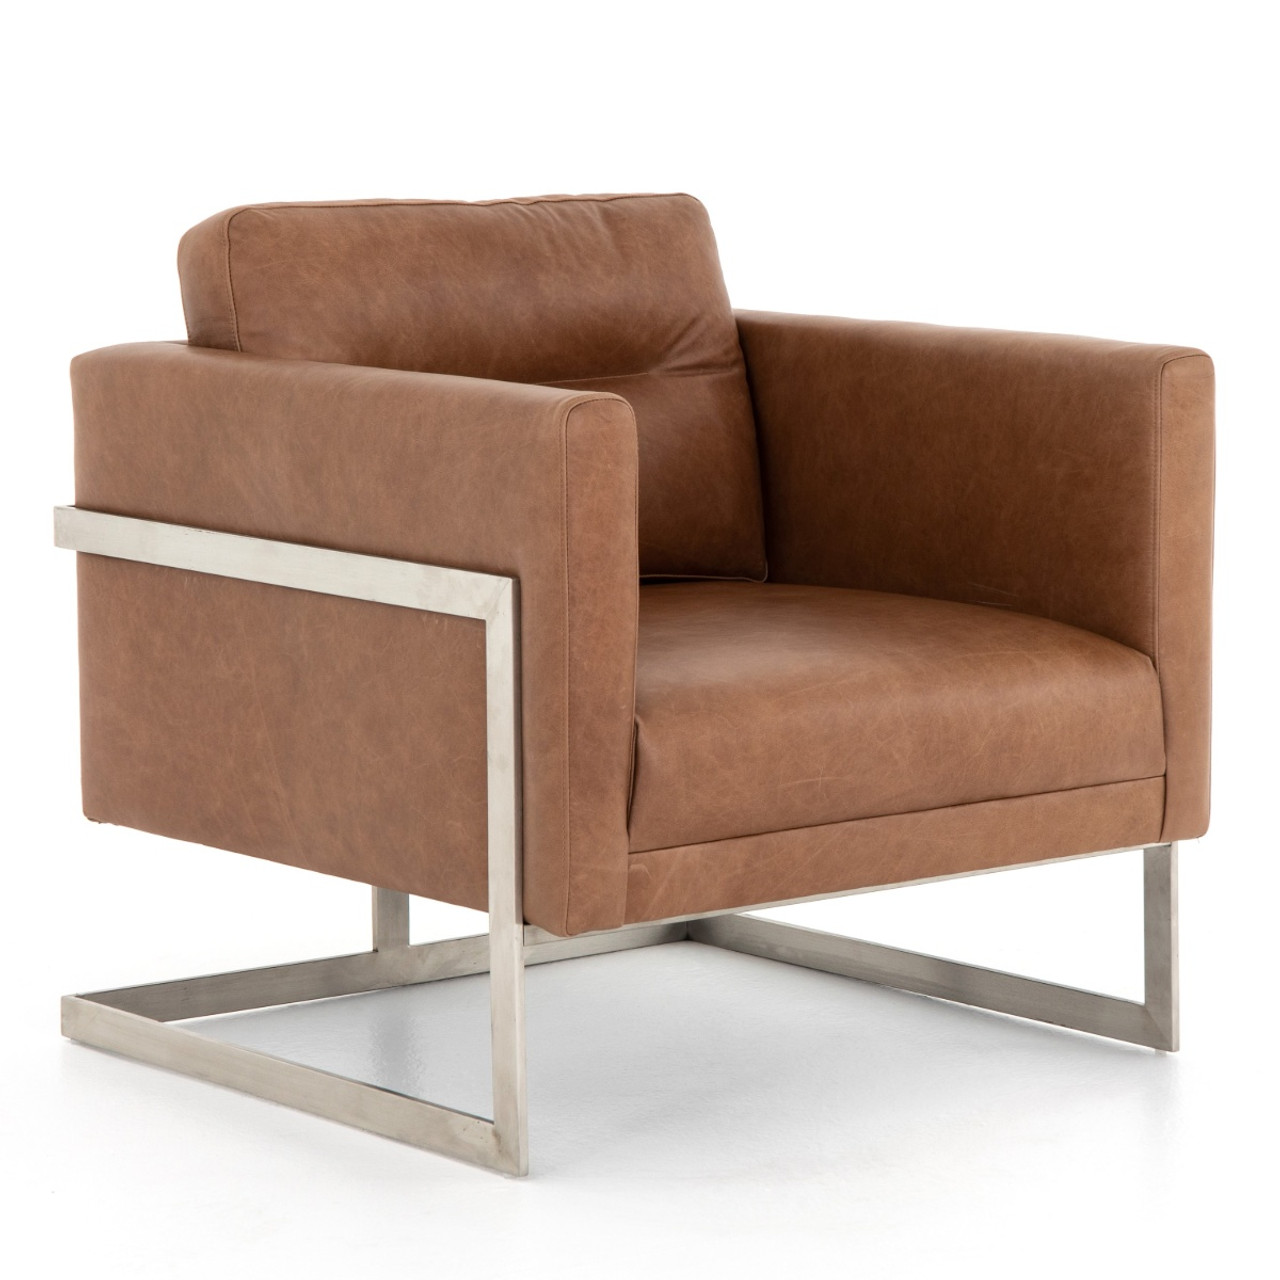 Sensational Fiona Modern Tan Leather Club Chair Gamerscity Chair Design For Home Gamerscityorg